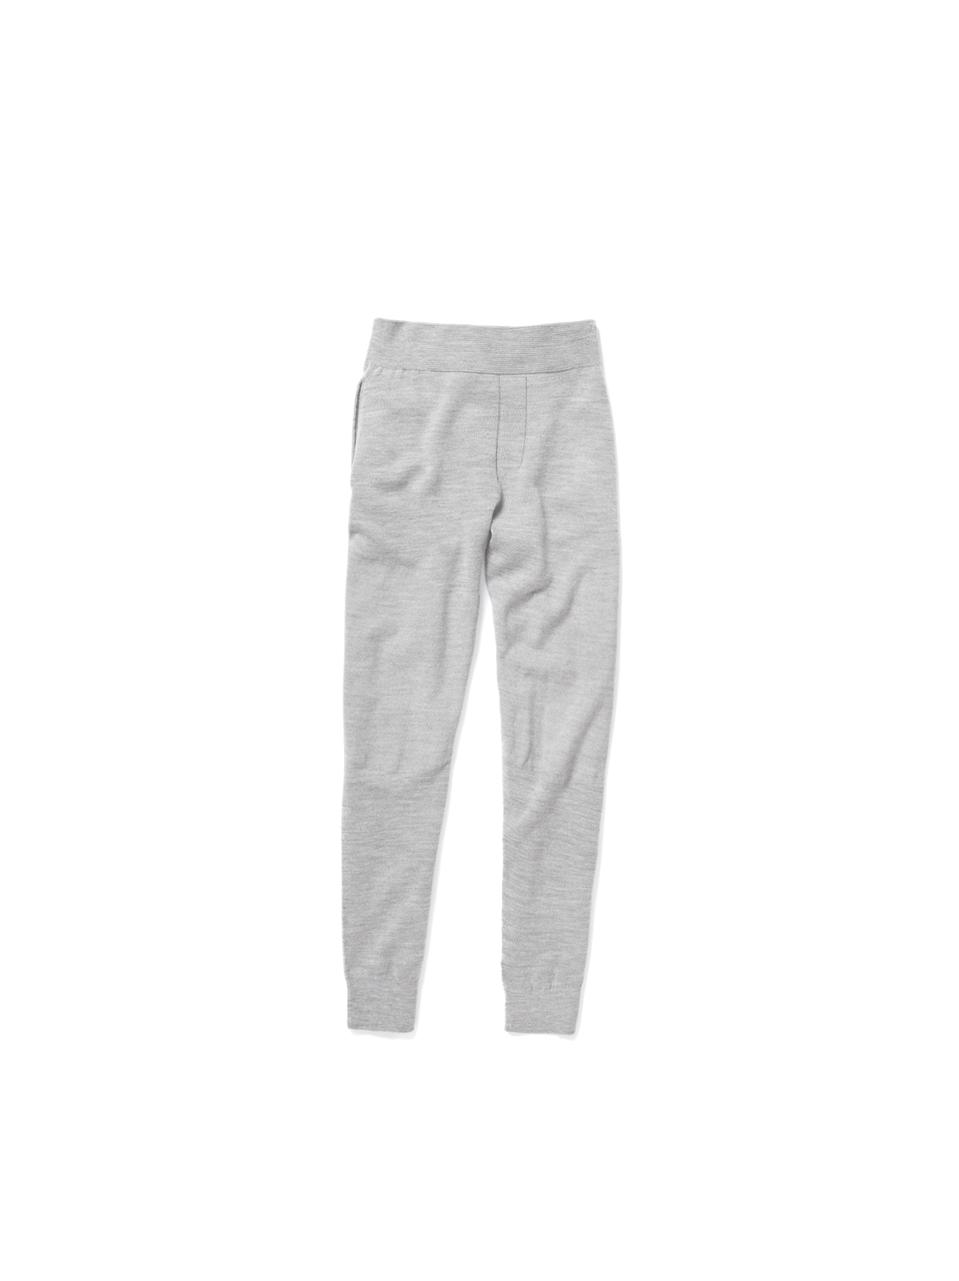 Holden Whole Garment Joggers